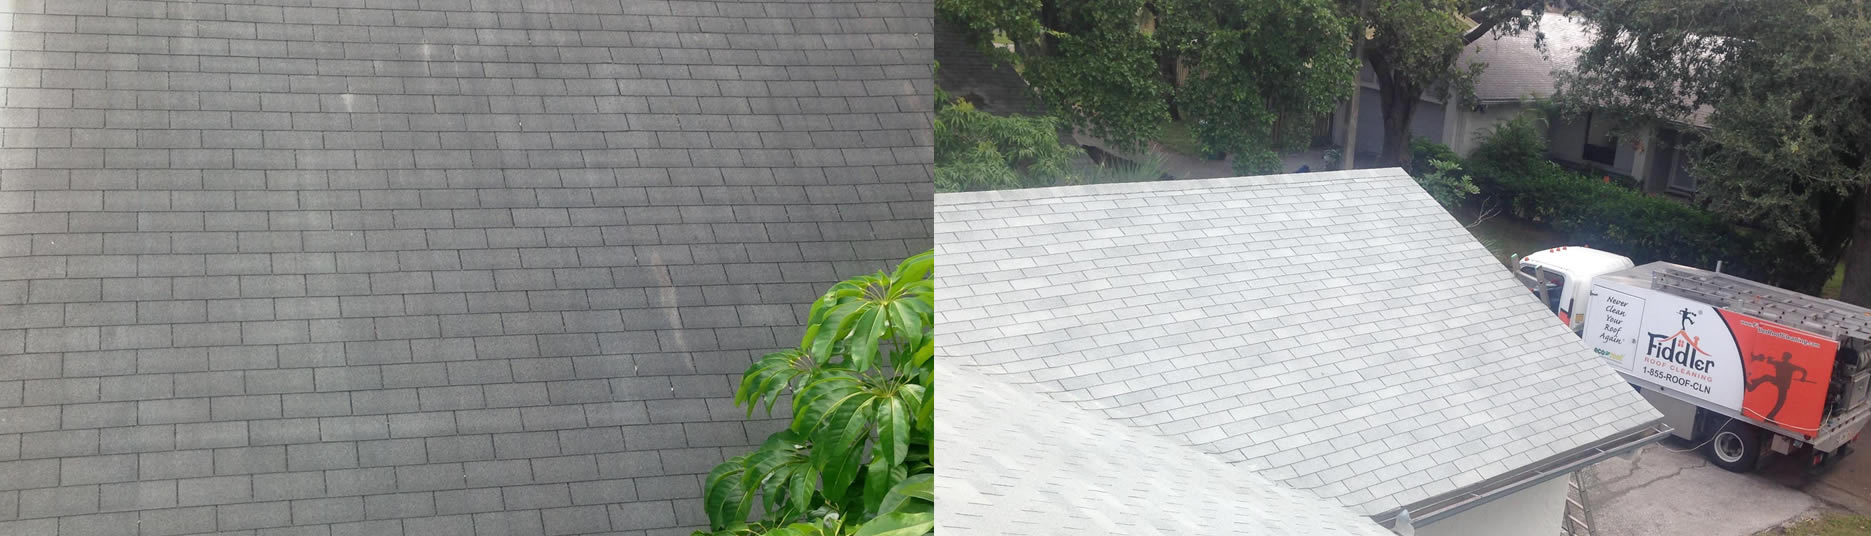 Great Fiddler Roof Cleaning Is The Roof Cleaning Coconut Creek Company With The  Skill Set Needed To